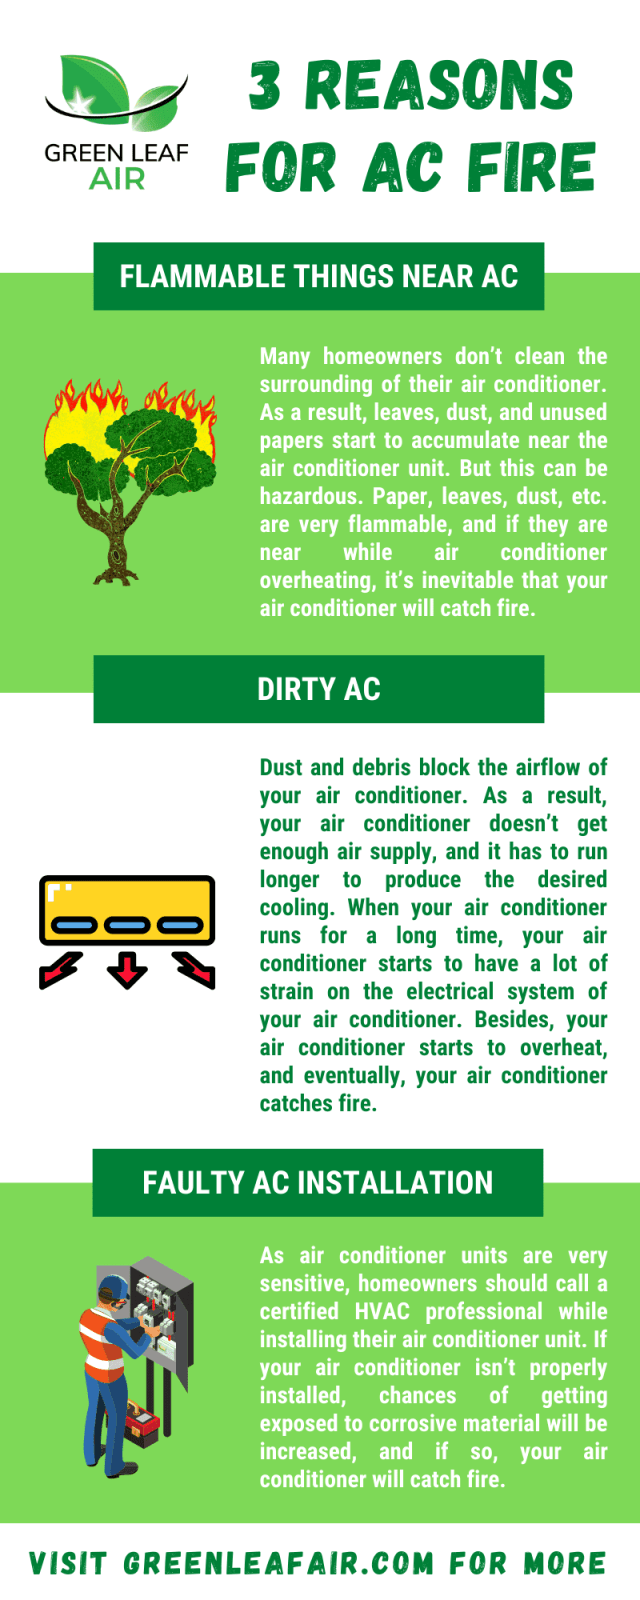 3 Reasons for AC Fire